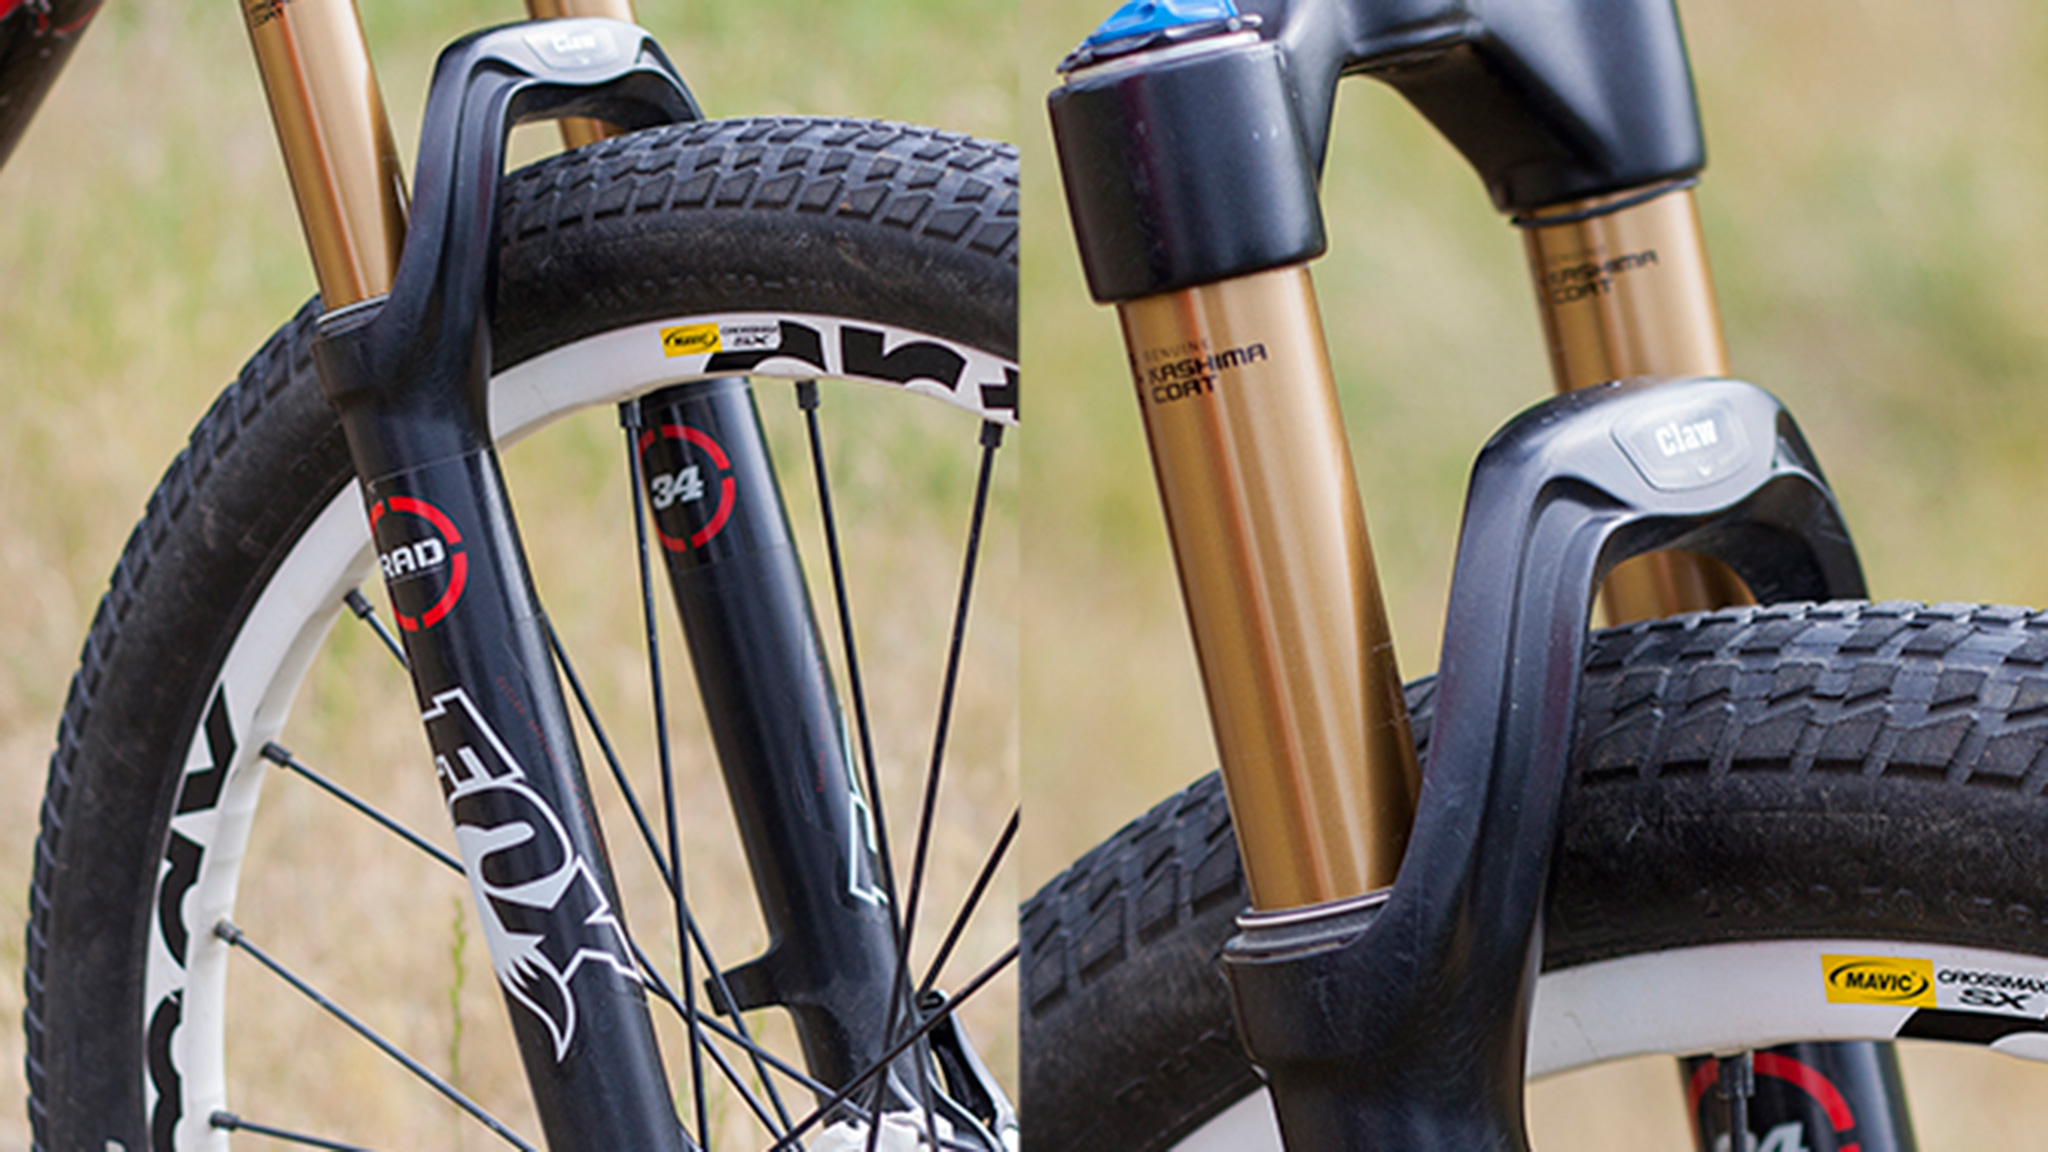 Fox 831 34mm Suspension Fork